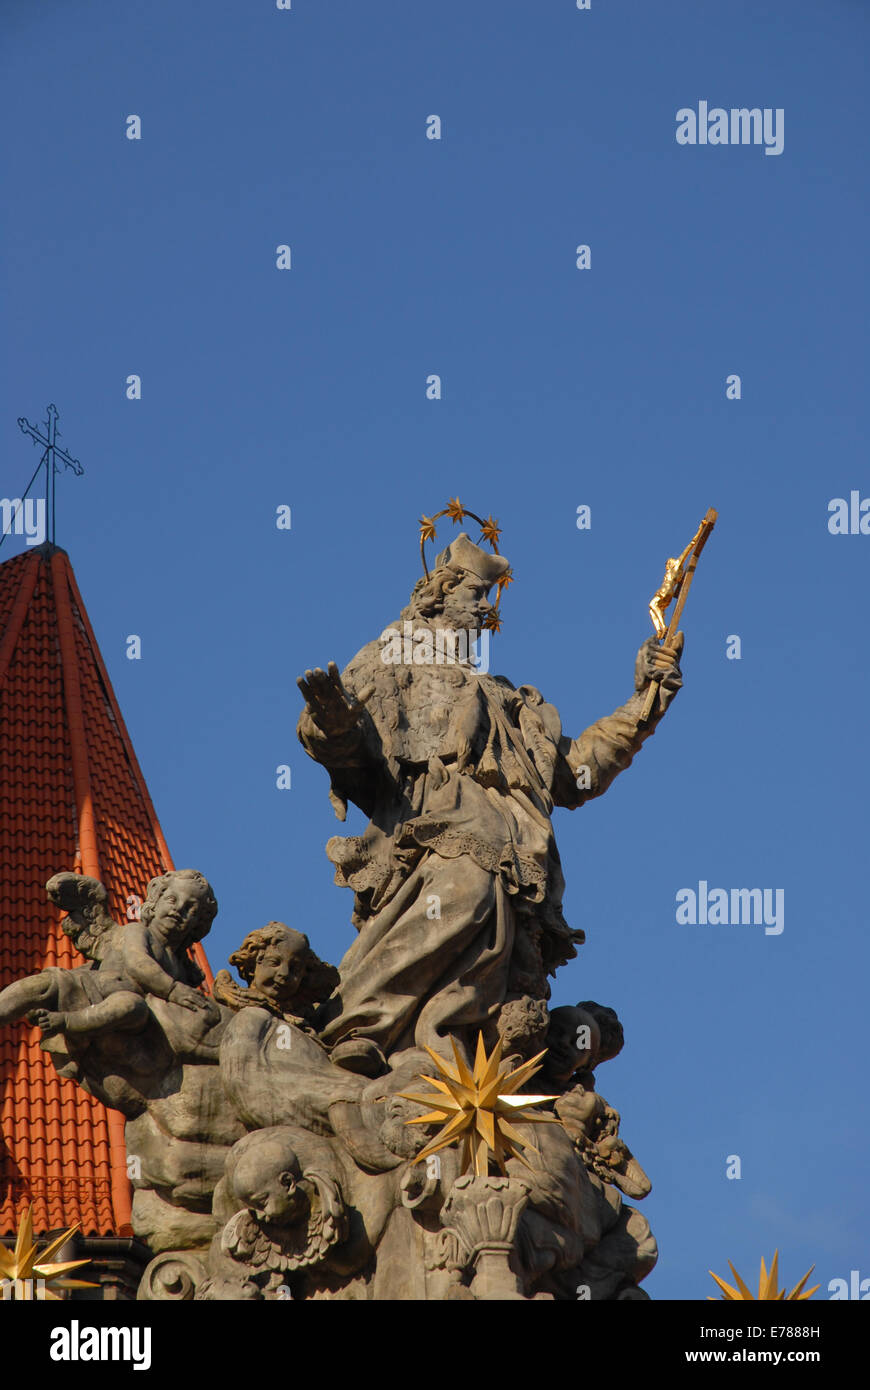 Jan Urbansky's Monument to St John Nepomuk, erected in 1730-1732, Wroclaw, Lower Silesia, Poland Stock Photo